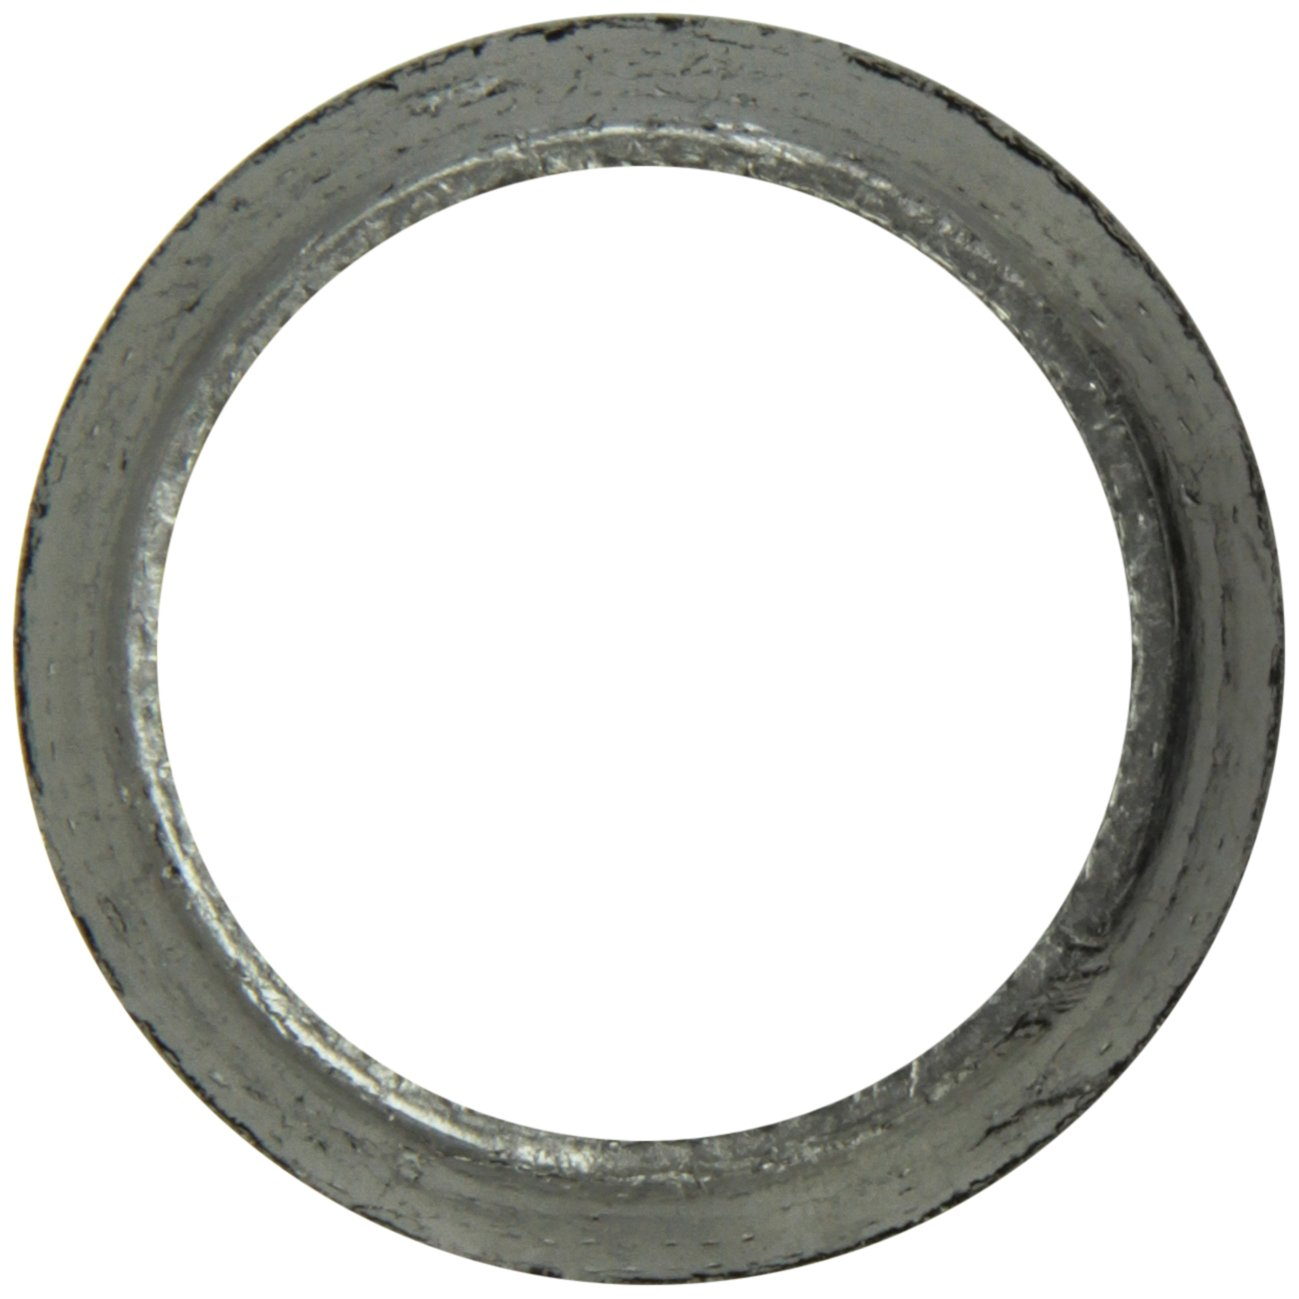 MAHLE Original F7171 Exhaust Pipe Flange Gasket F7171VCT